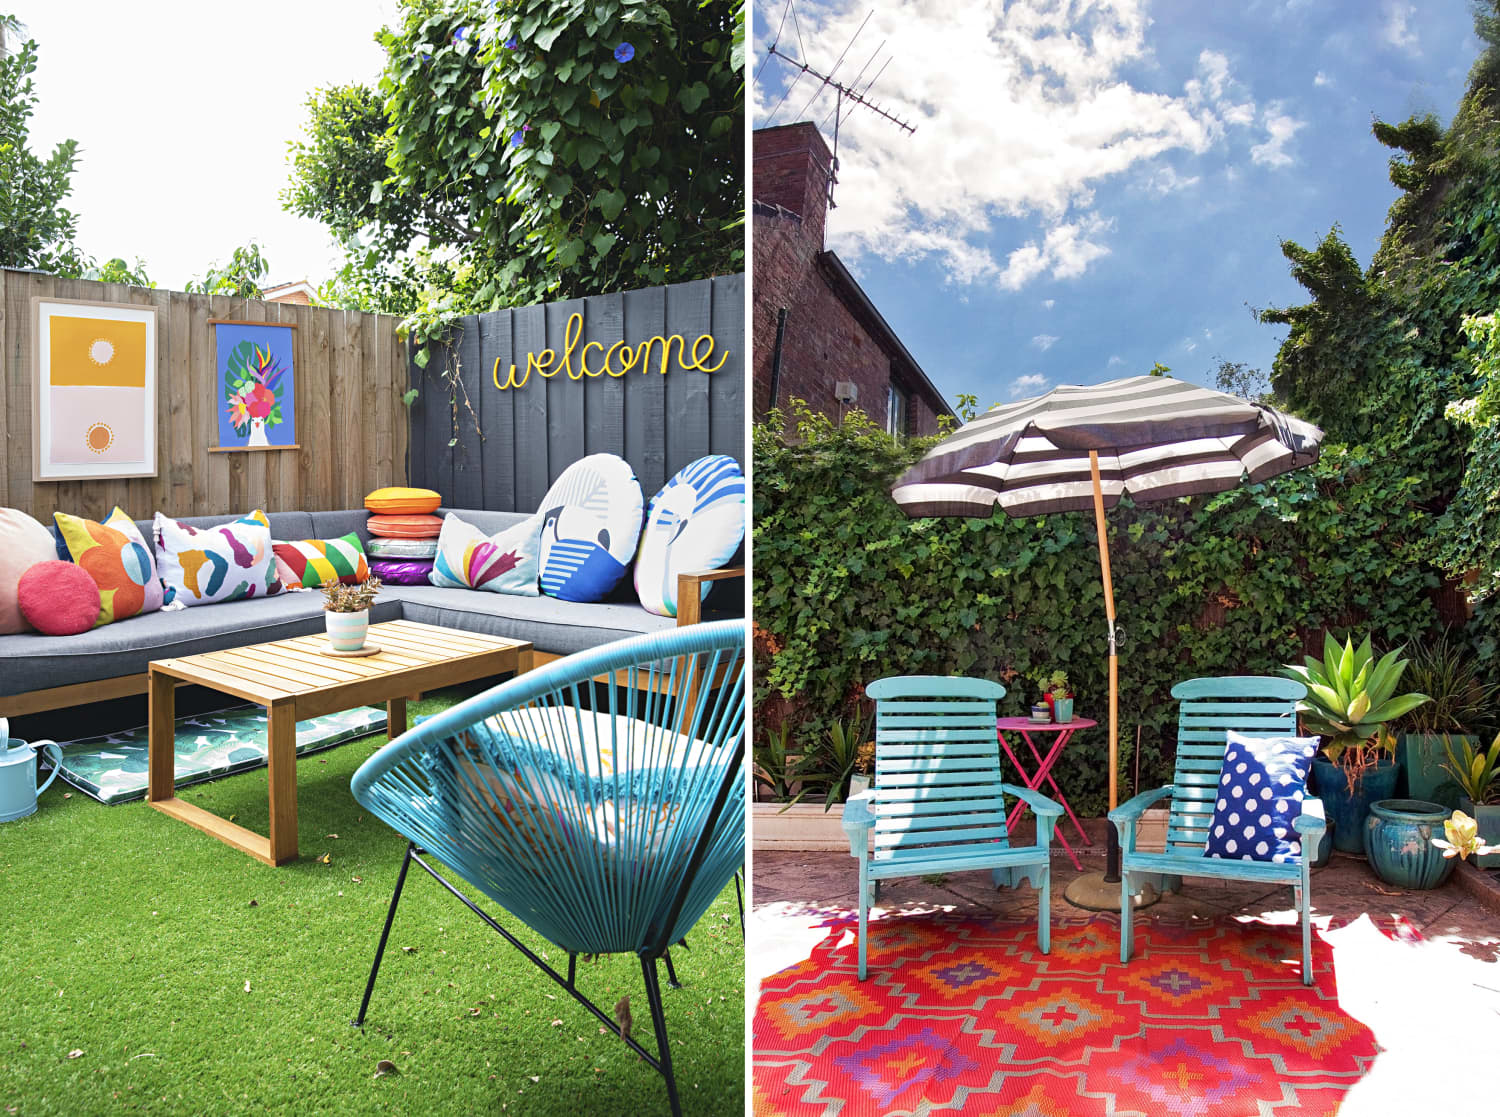 13 of the Most Colorful Outdoor Spaces We've Seen this Summer